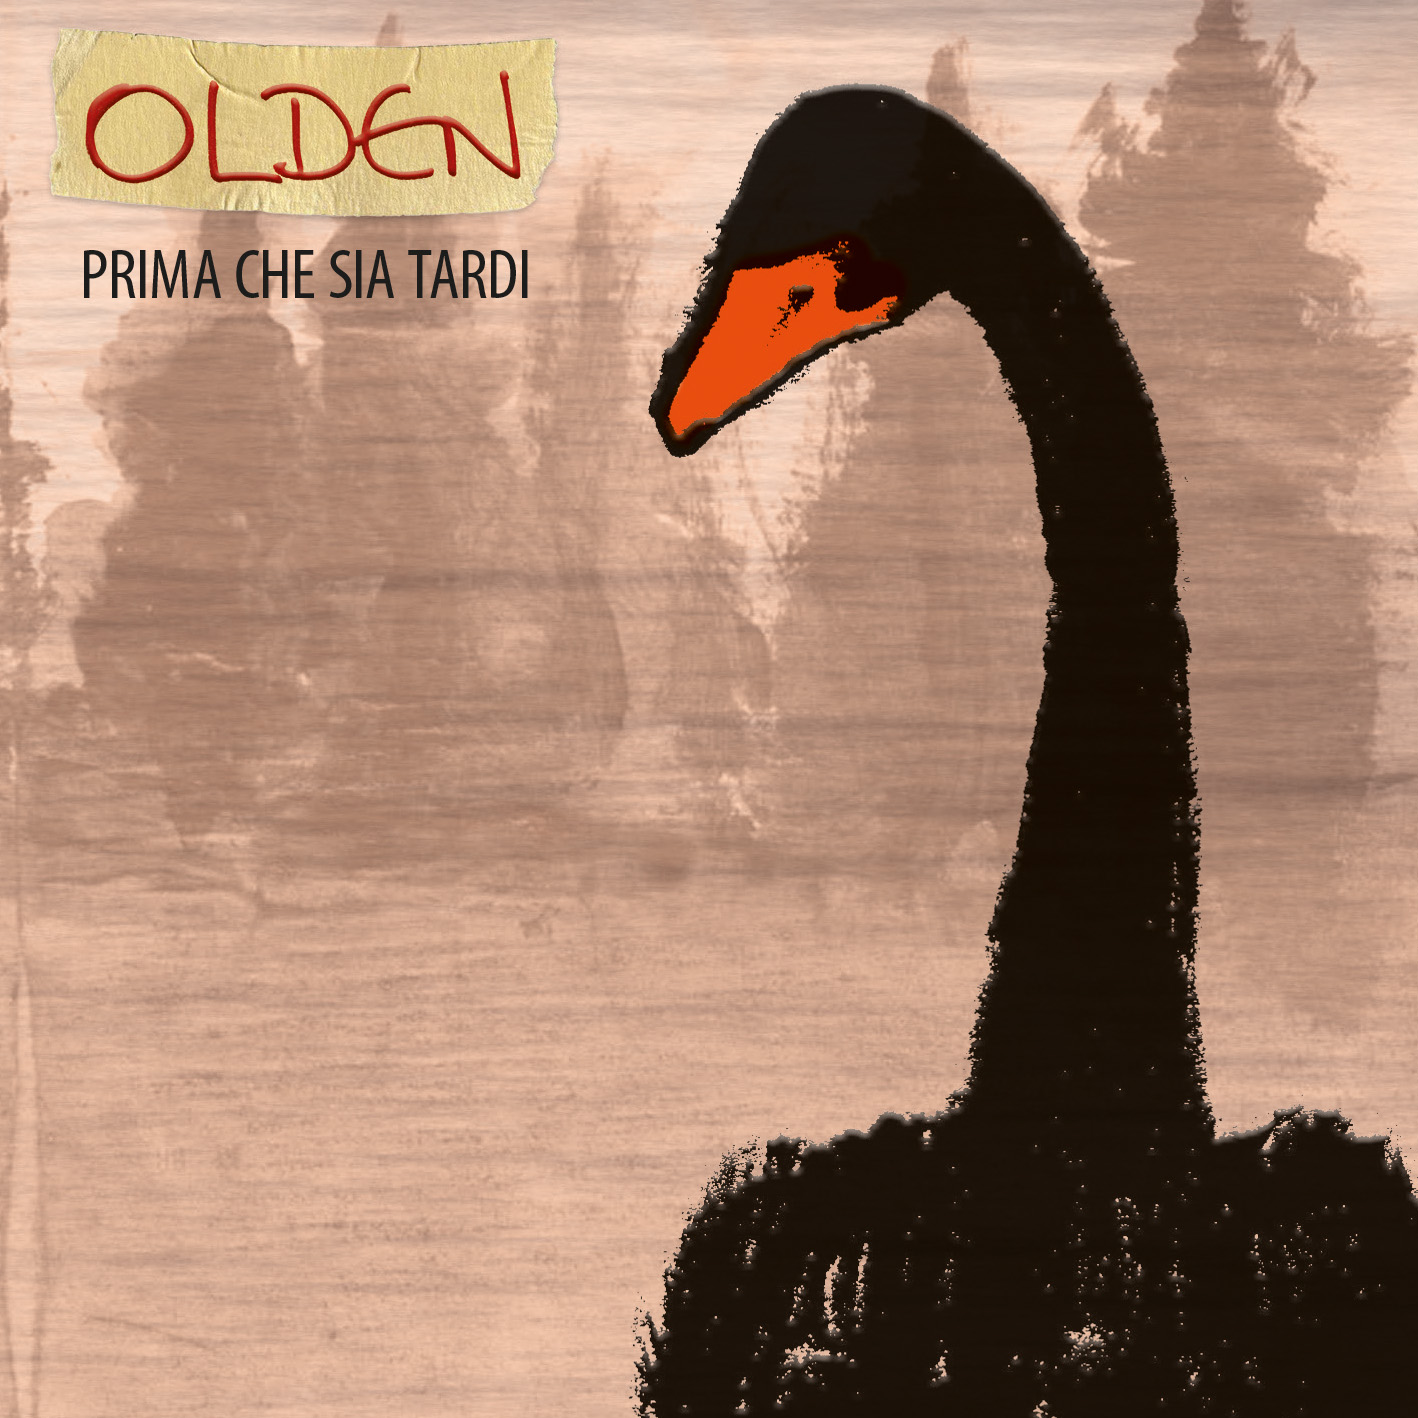 Olden – Prima che sia tardi – CD Booklet.indd